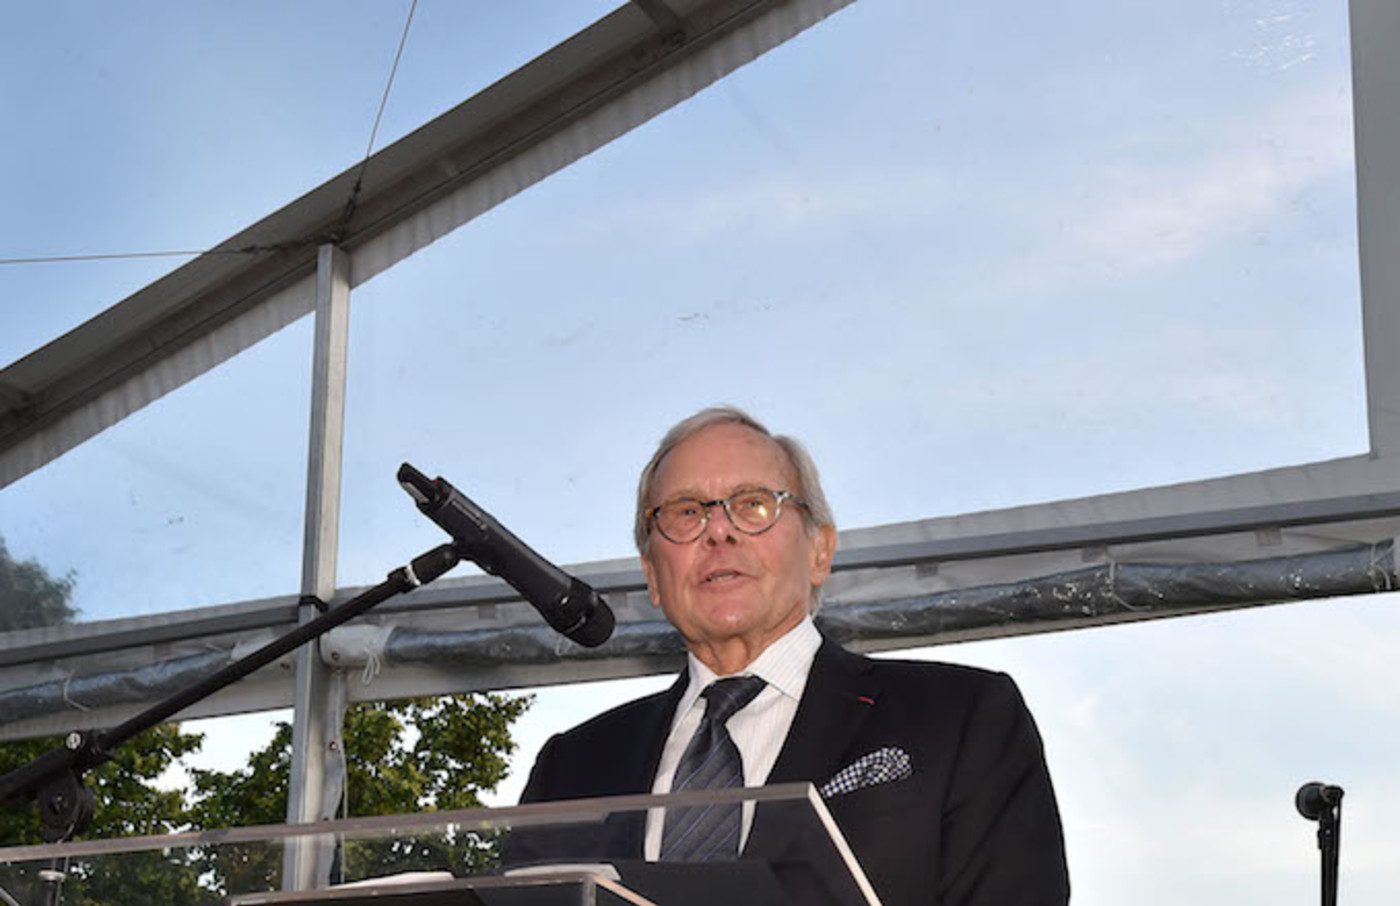 Tom Brokaw attends the Four Freedoms Park Conservancy's Sunset Garden Party.